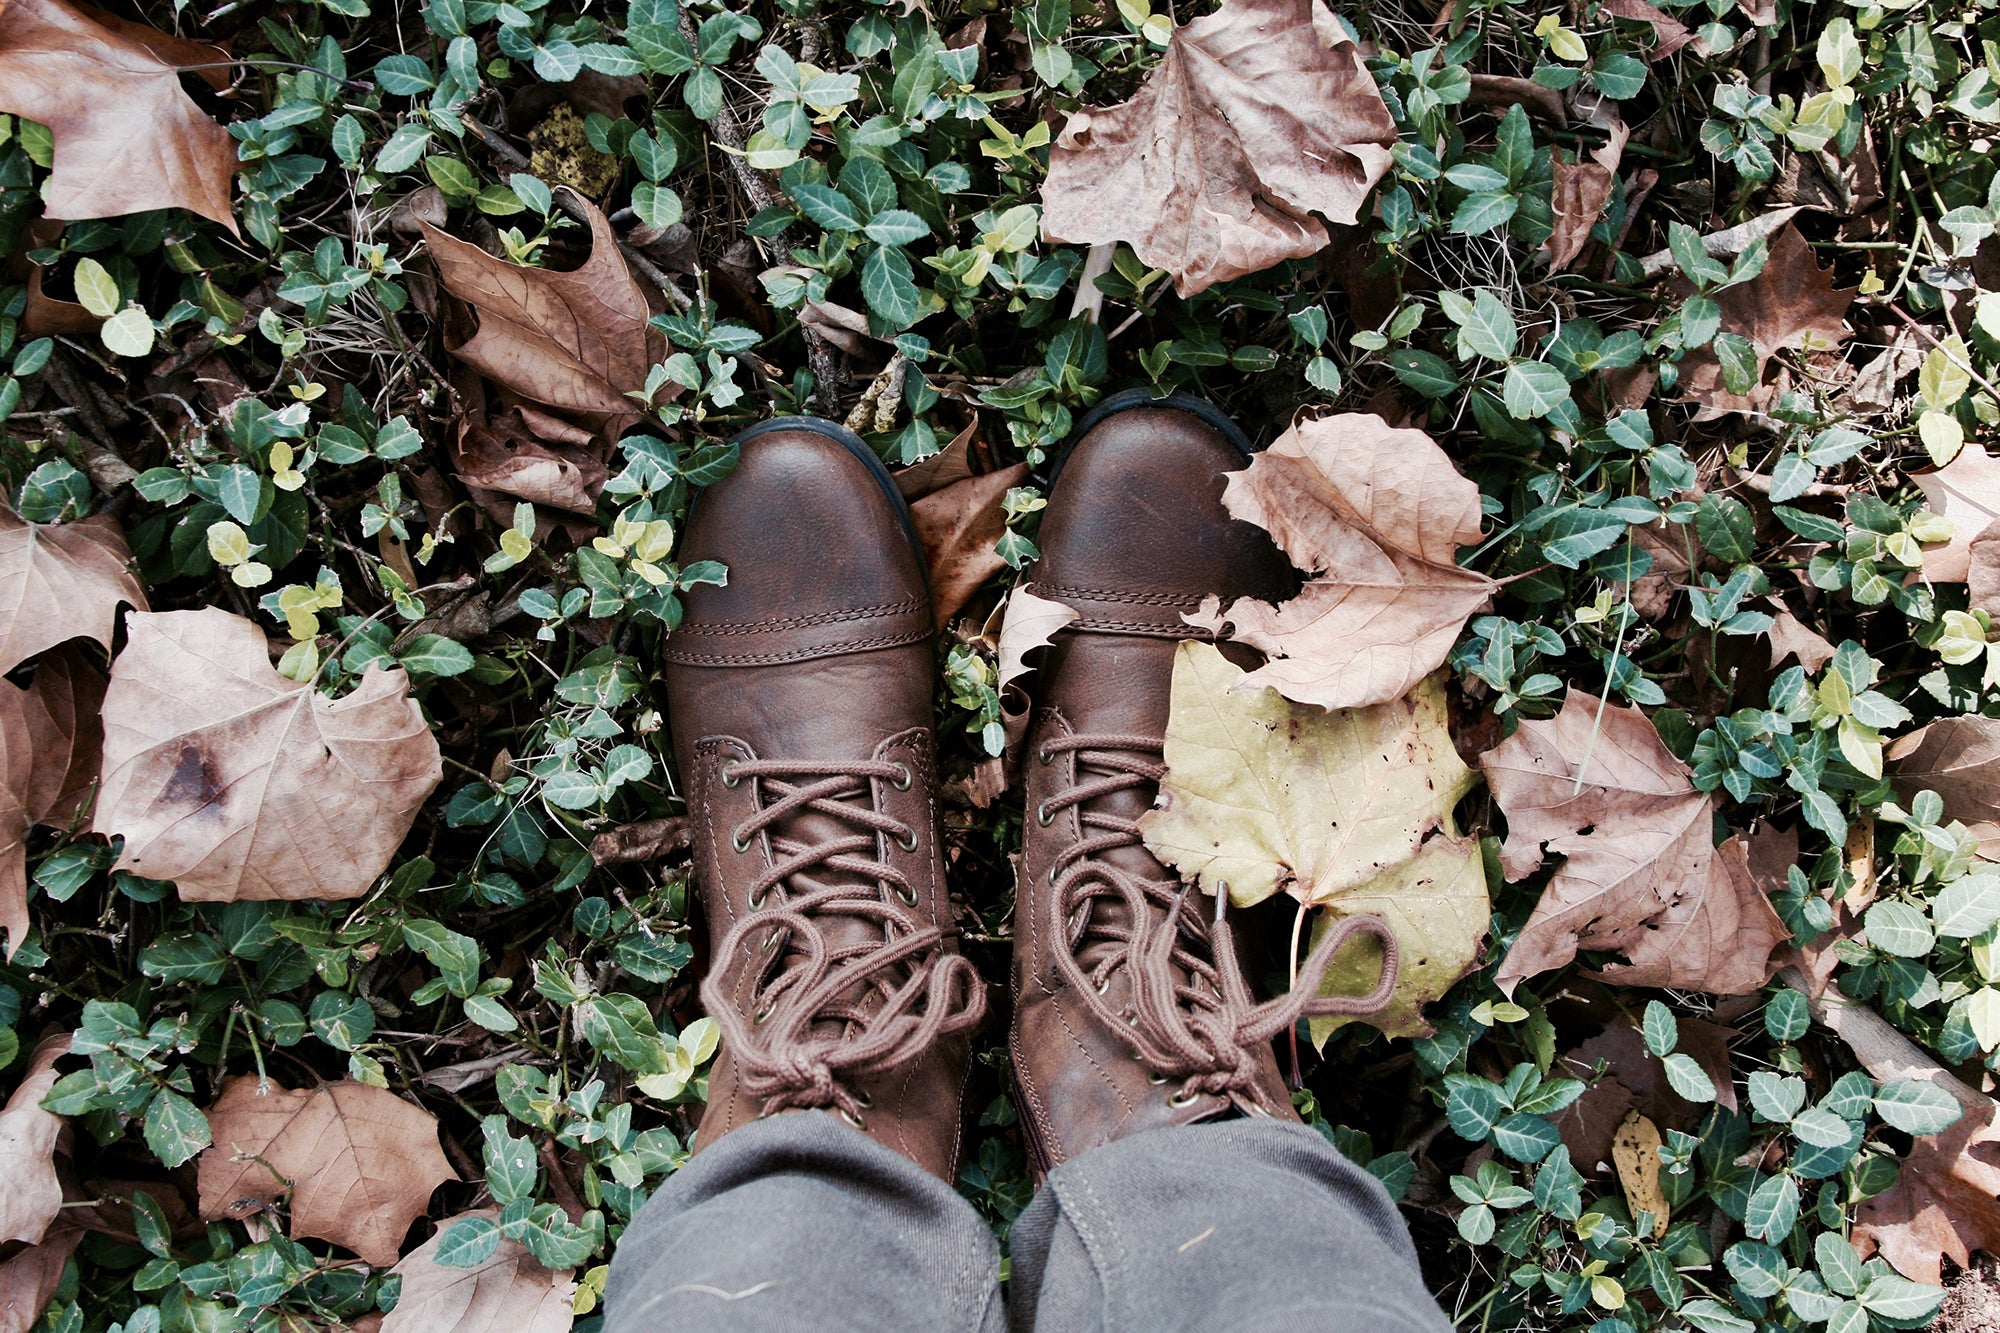 boots standing on grass with leaves around them